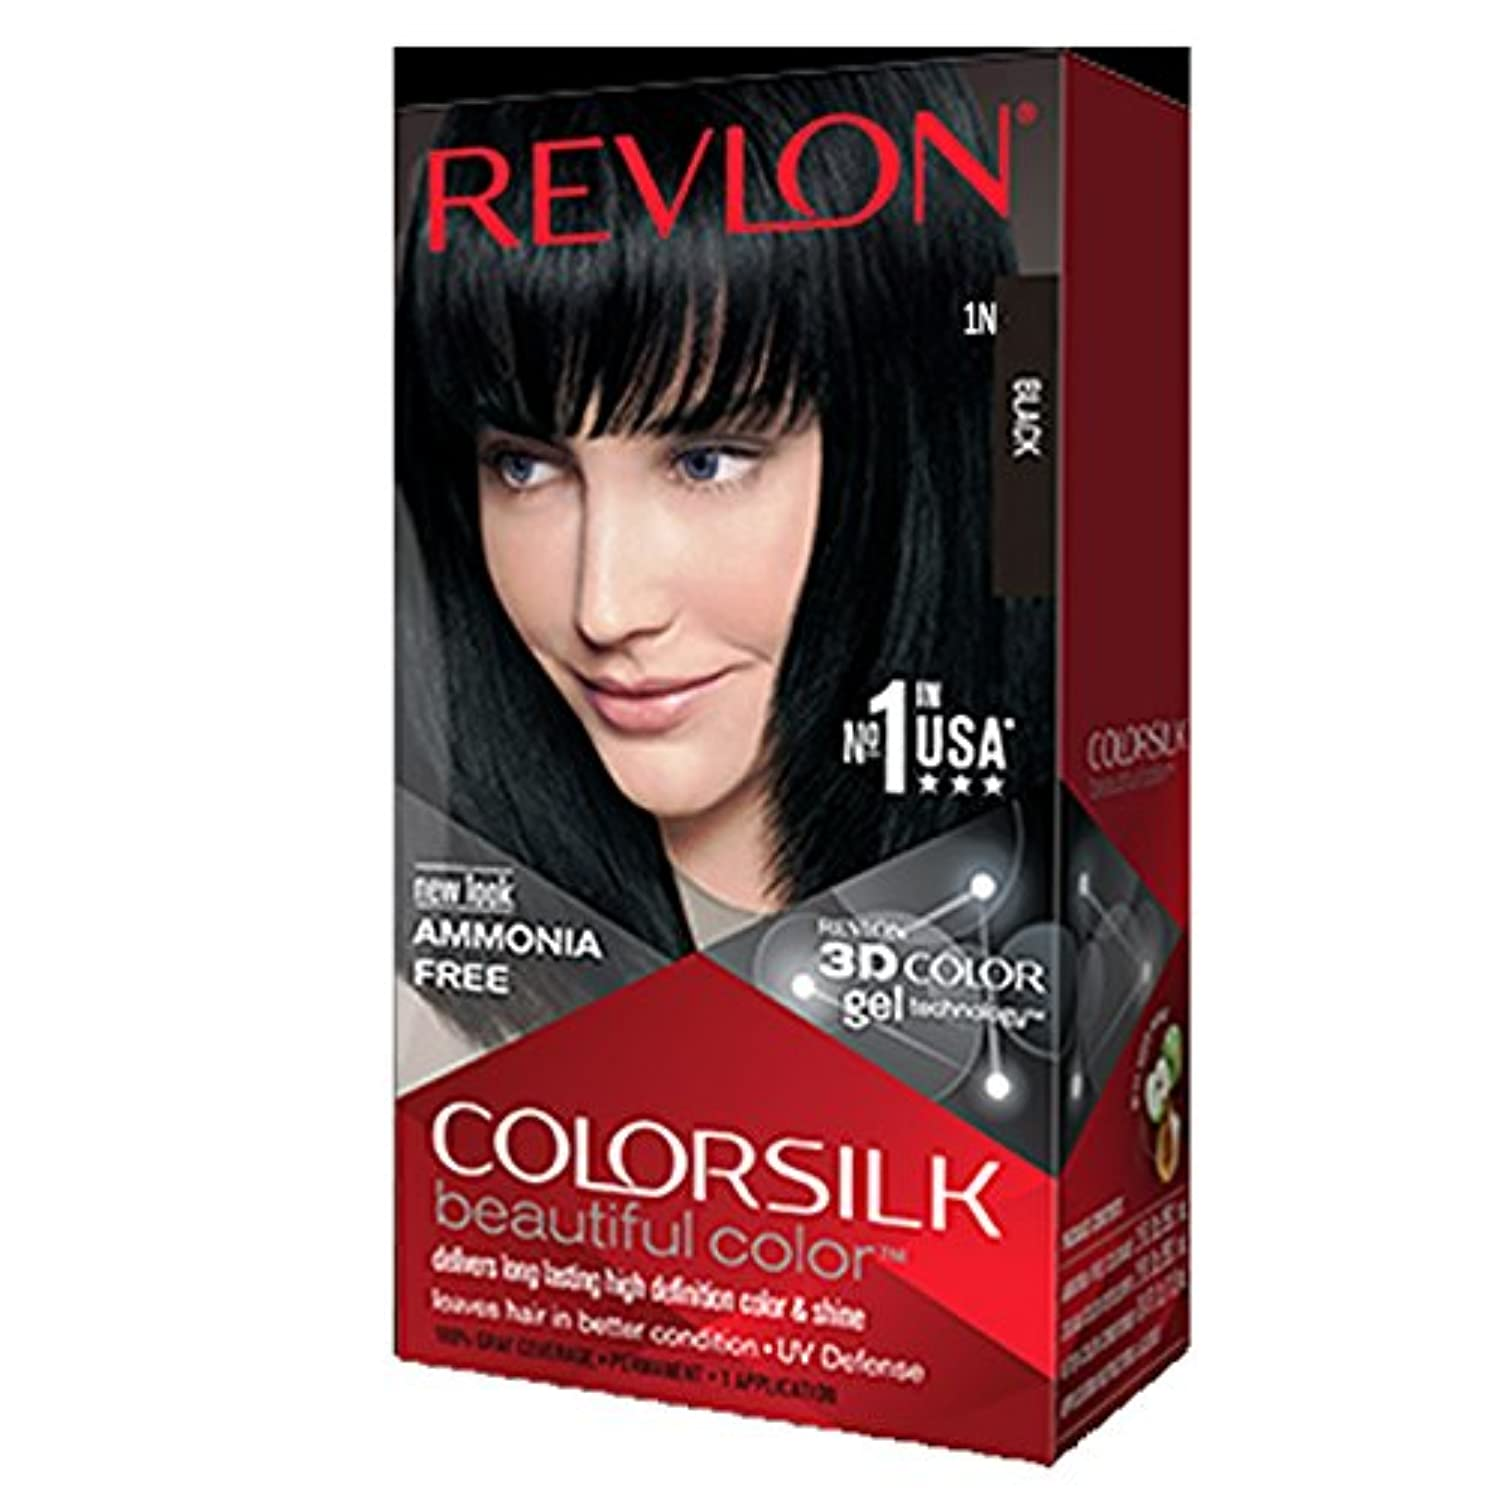 ビデオあざ残基Revlon Colorsilk Hair Color with 3D Color Gel Technology Black 1N